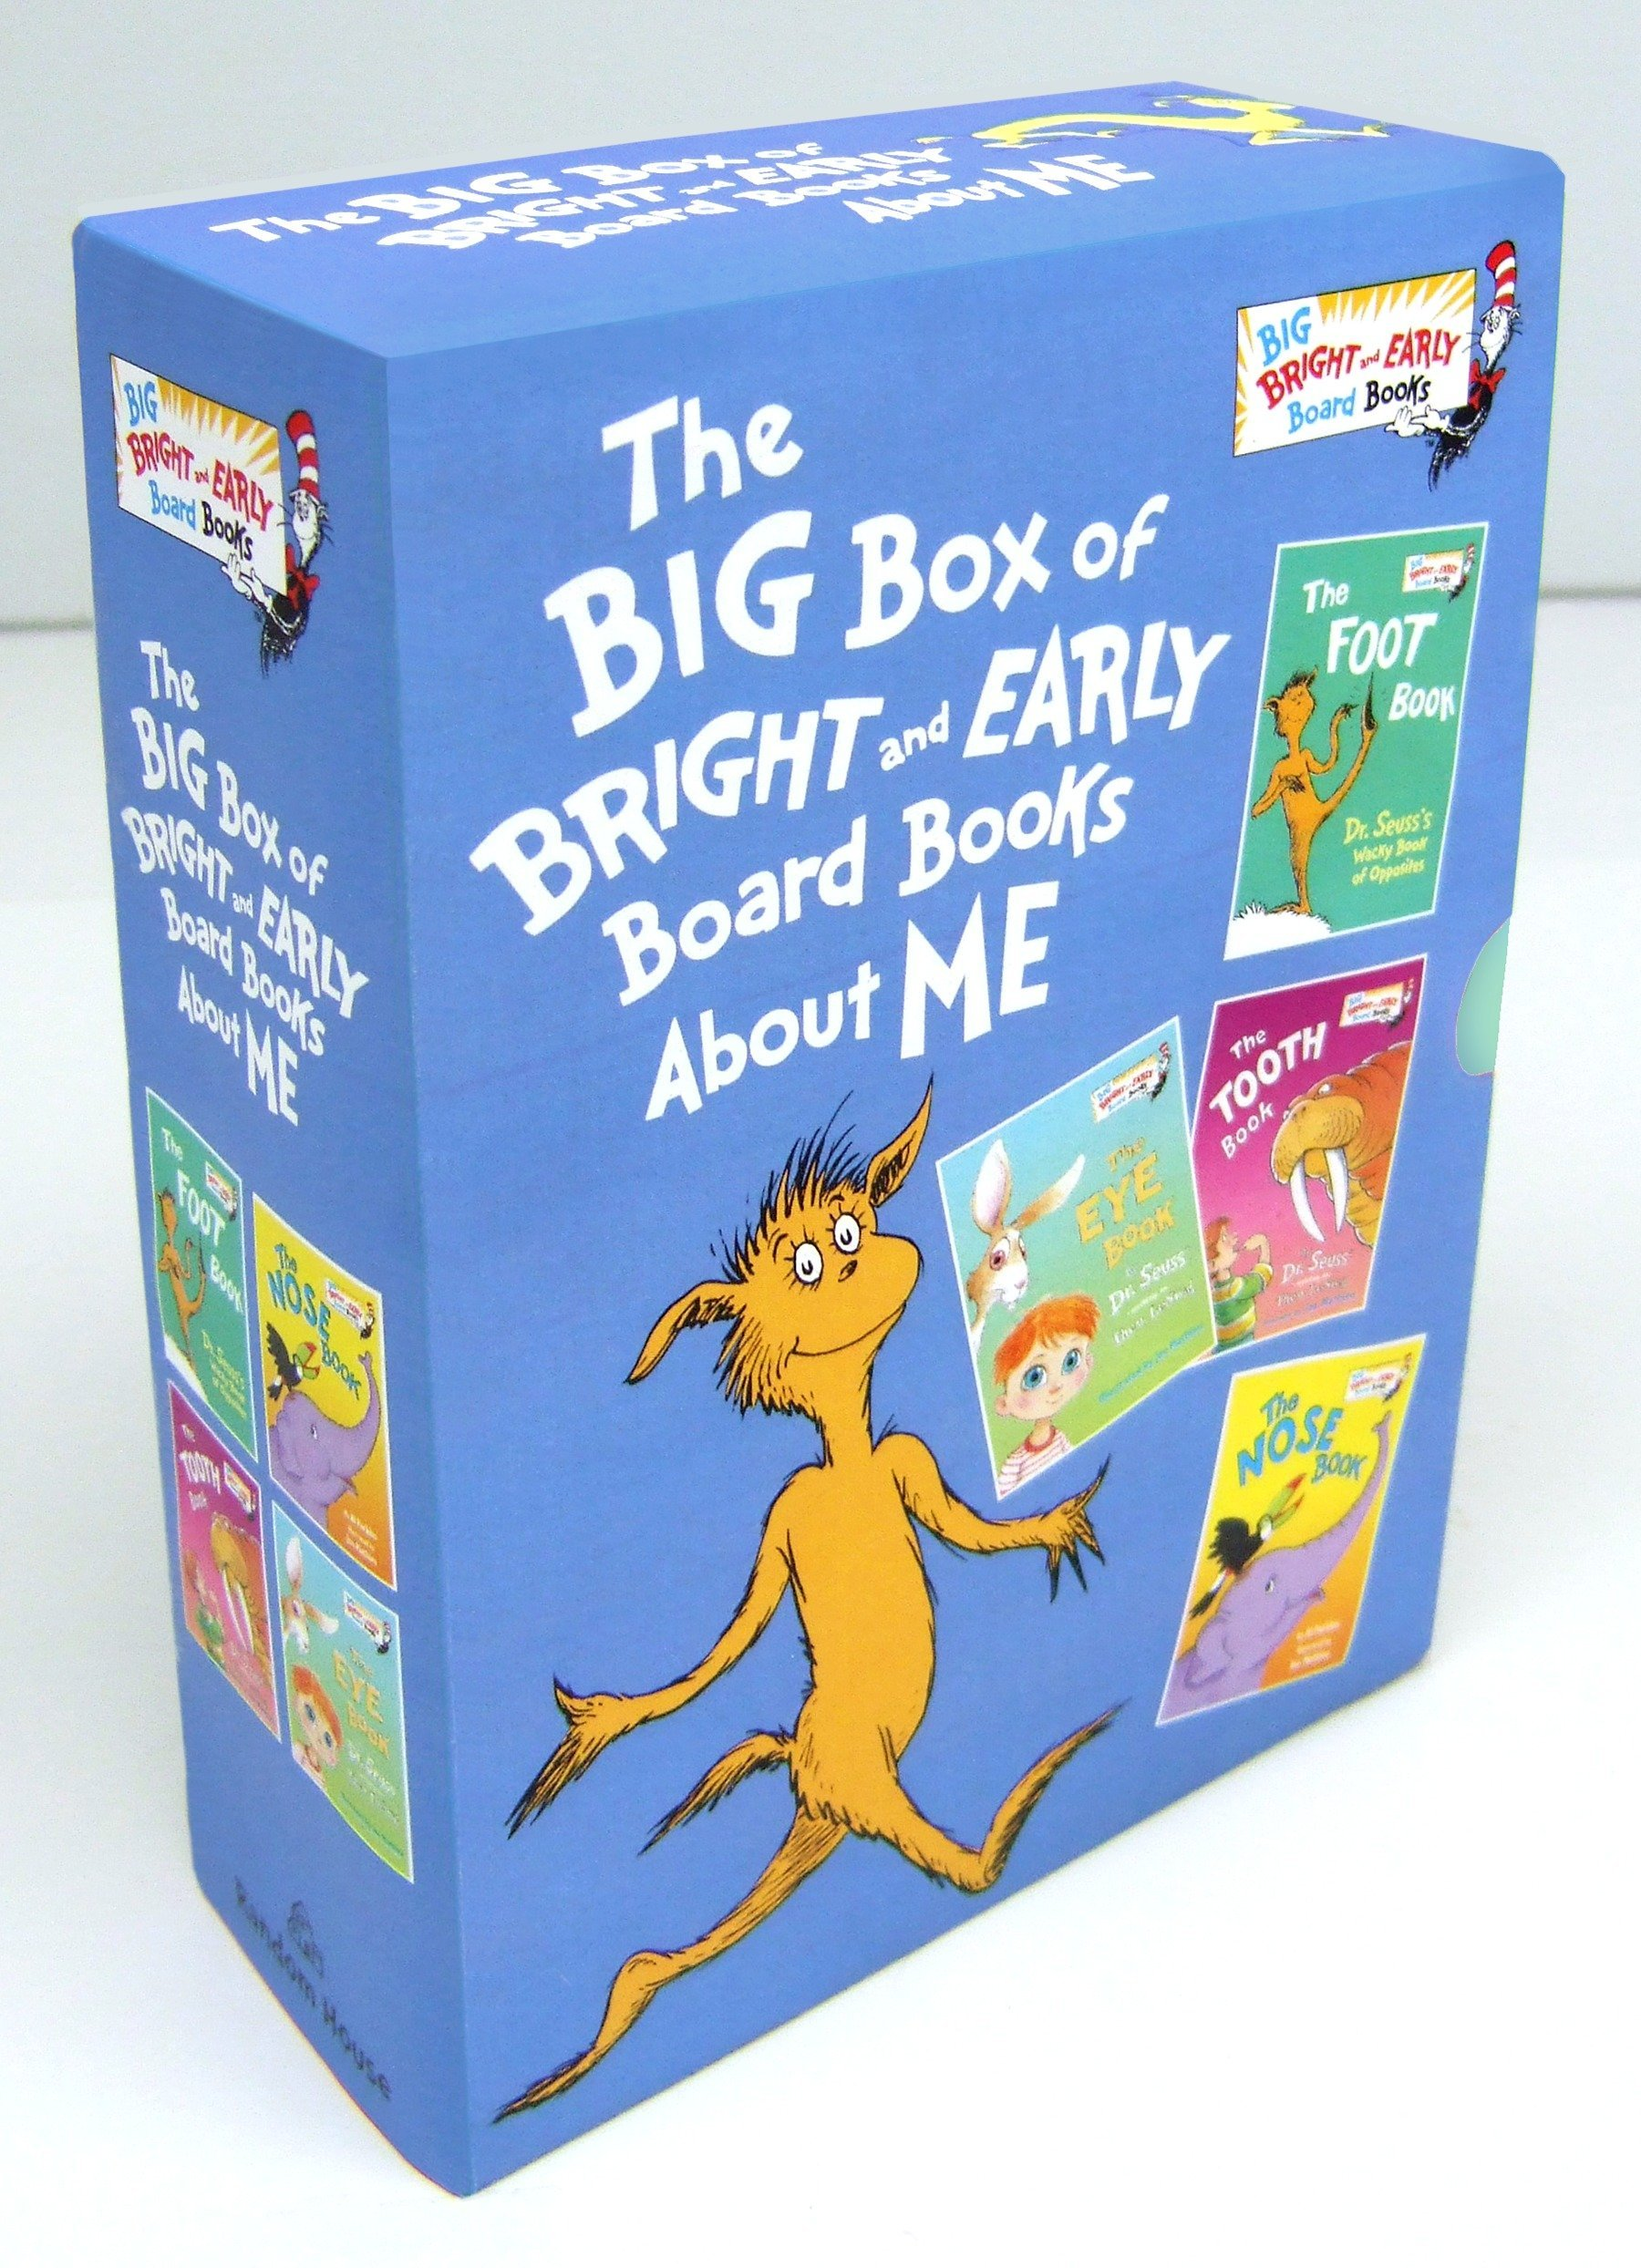 Download The Big Box of Bright and Early Board Books About Me (Big Bright & Early Board Book) pdf